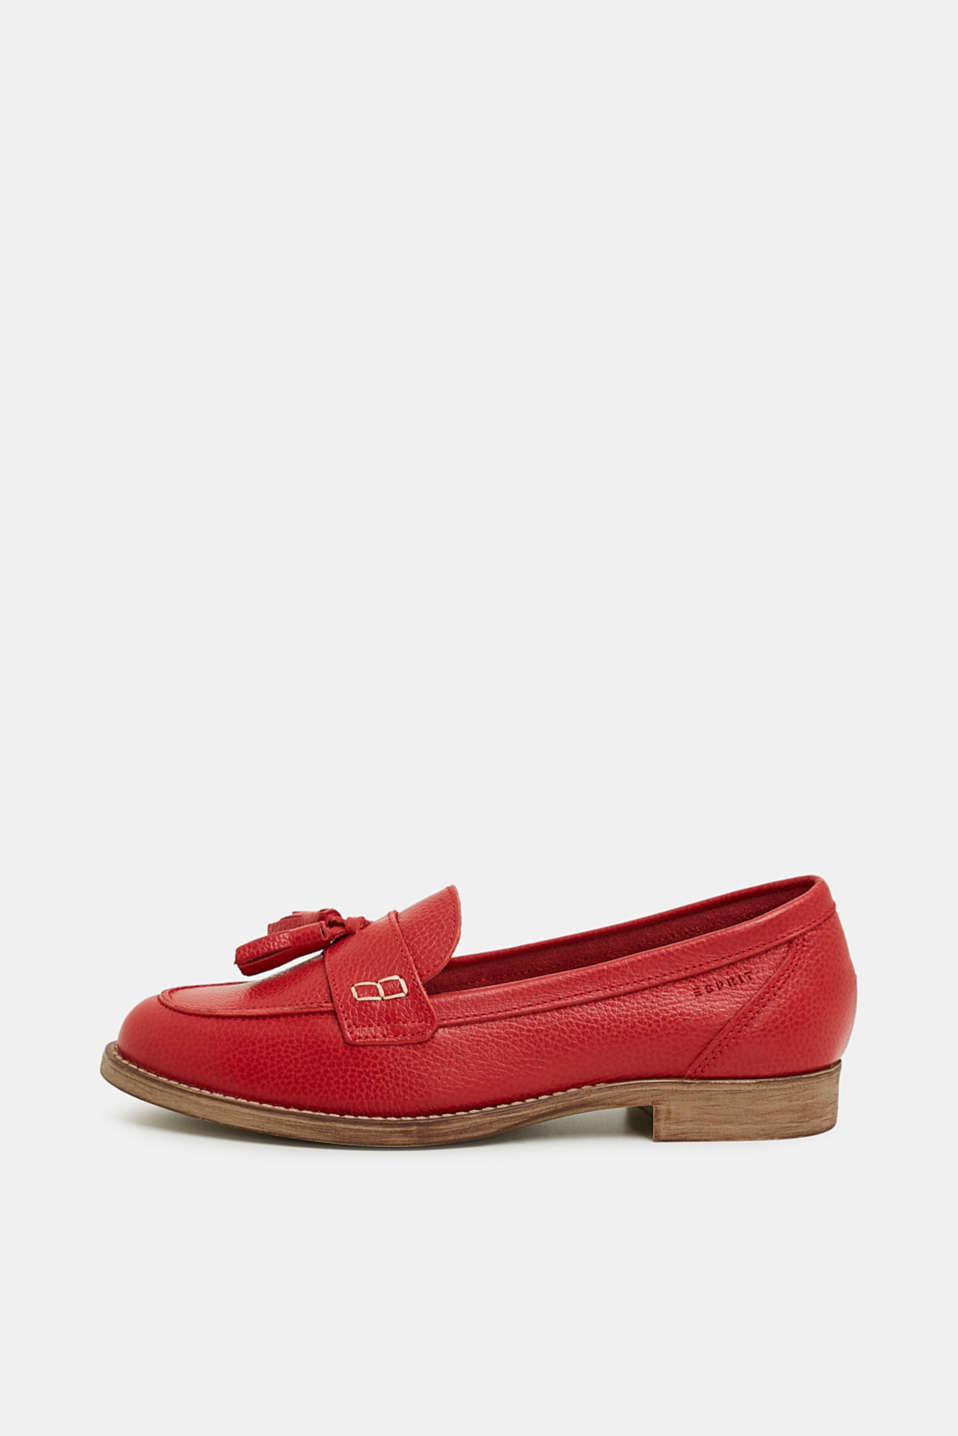 Esprit - Tassel loafers made of leather